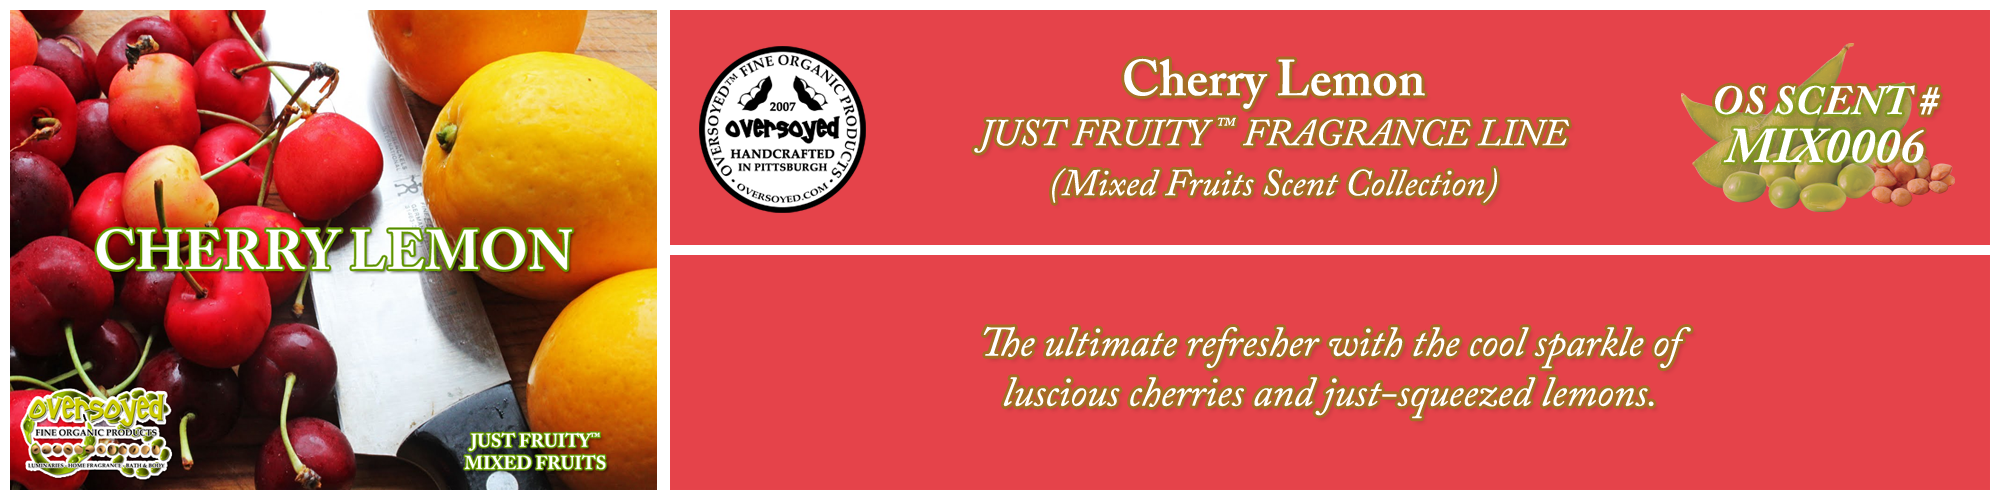 Cherry Lemon Handcrafted Products Collection